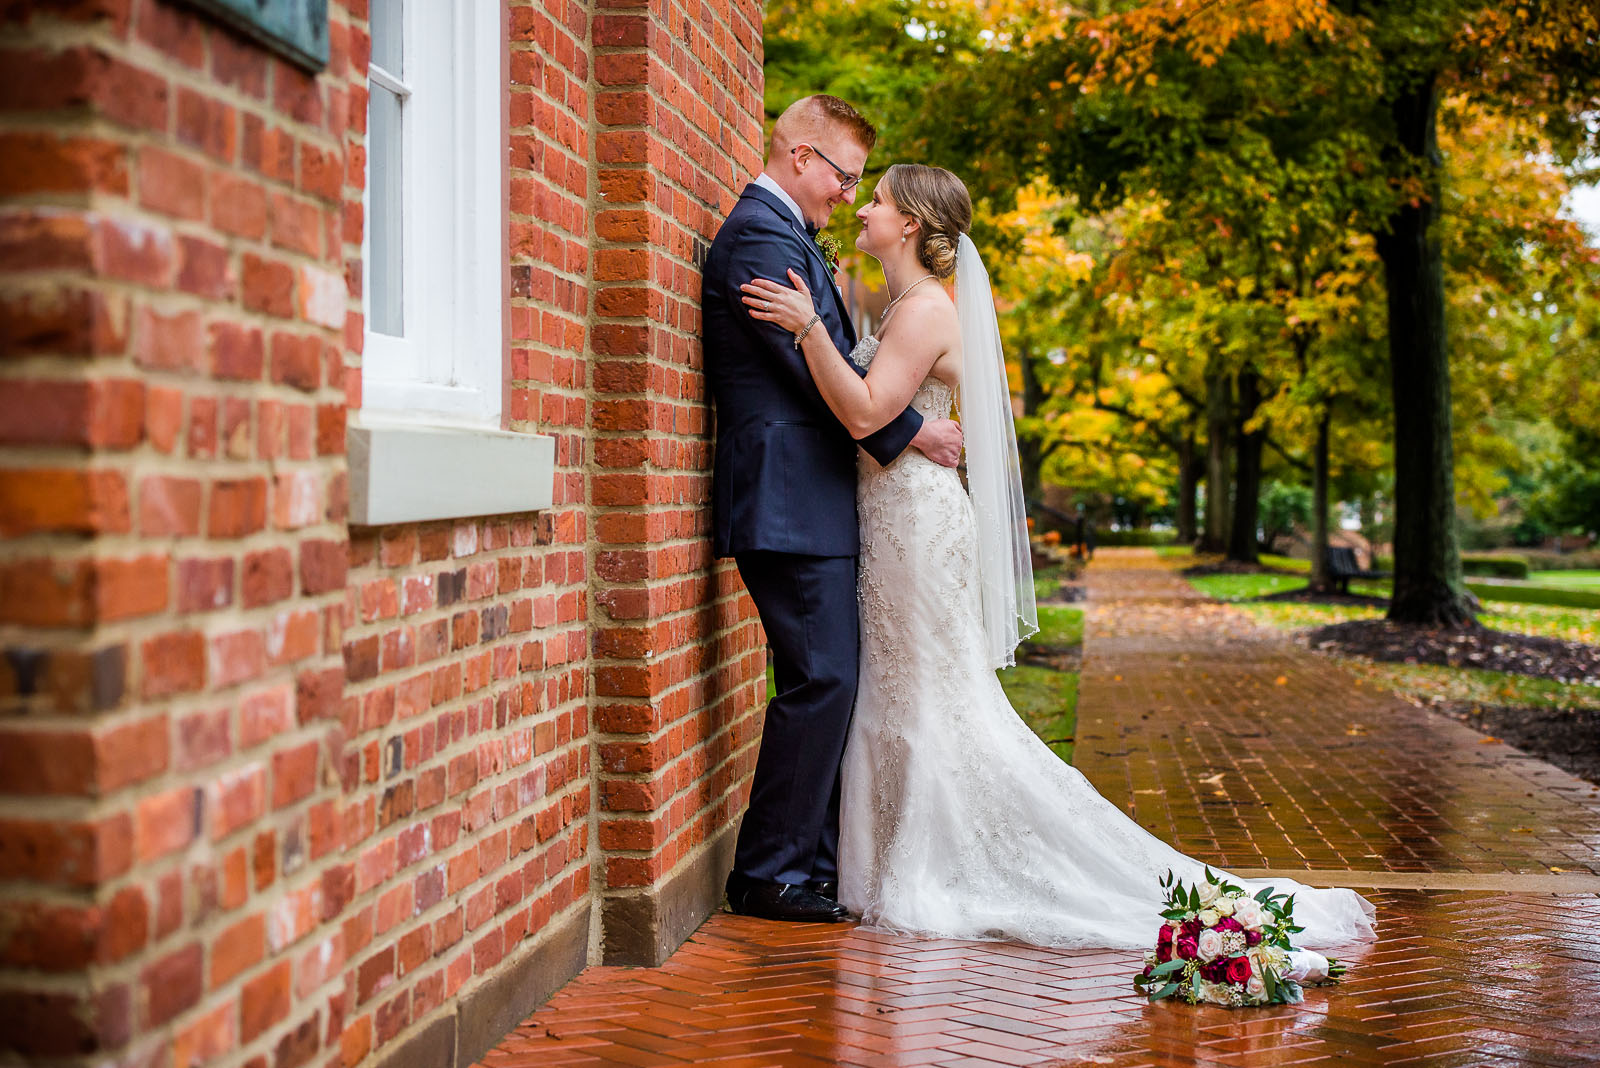 Eric_and_Christy_Photography_Blog_Wedding_Erica_Mike-58